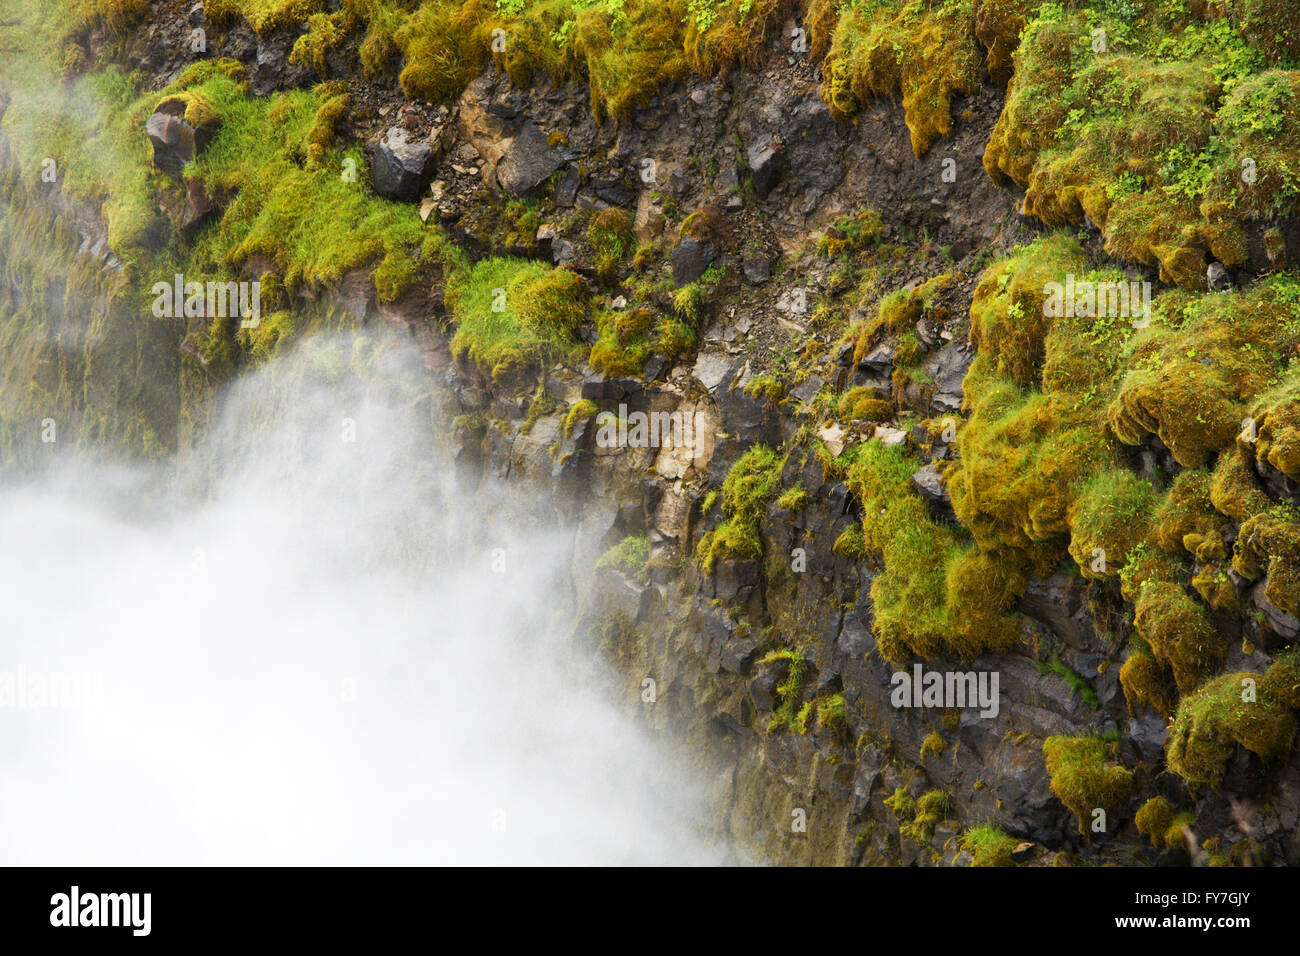 Rocks with green grass and falling water vapor - Stock Image